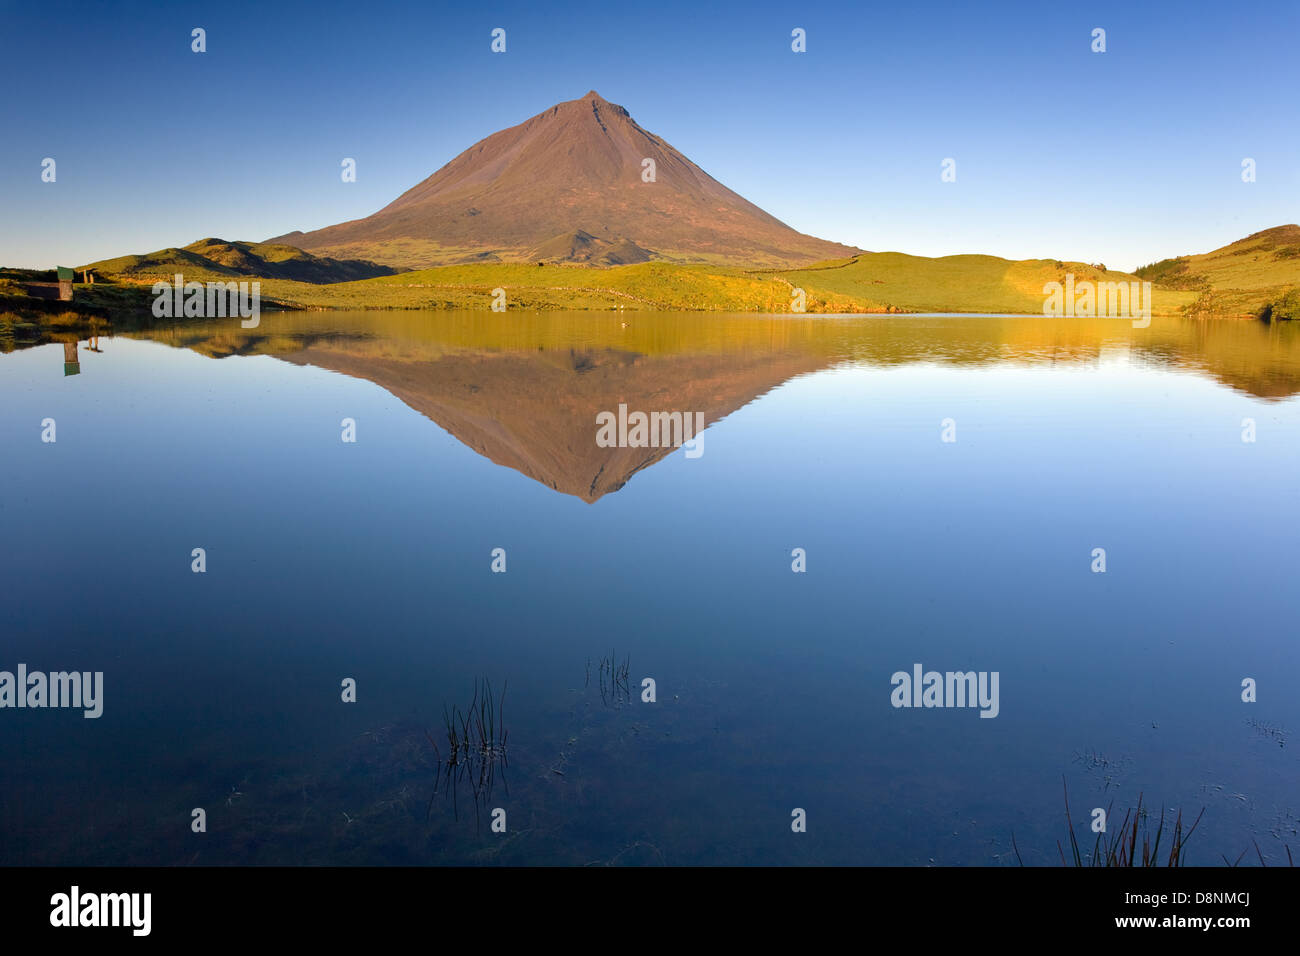 Pico Mountain reflected in Captain Lagoon at sunrise - Pico island - Azores - Stock Image